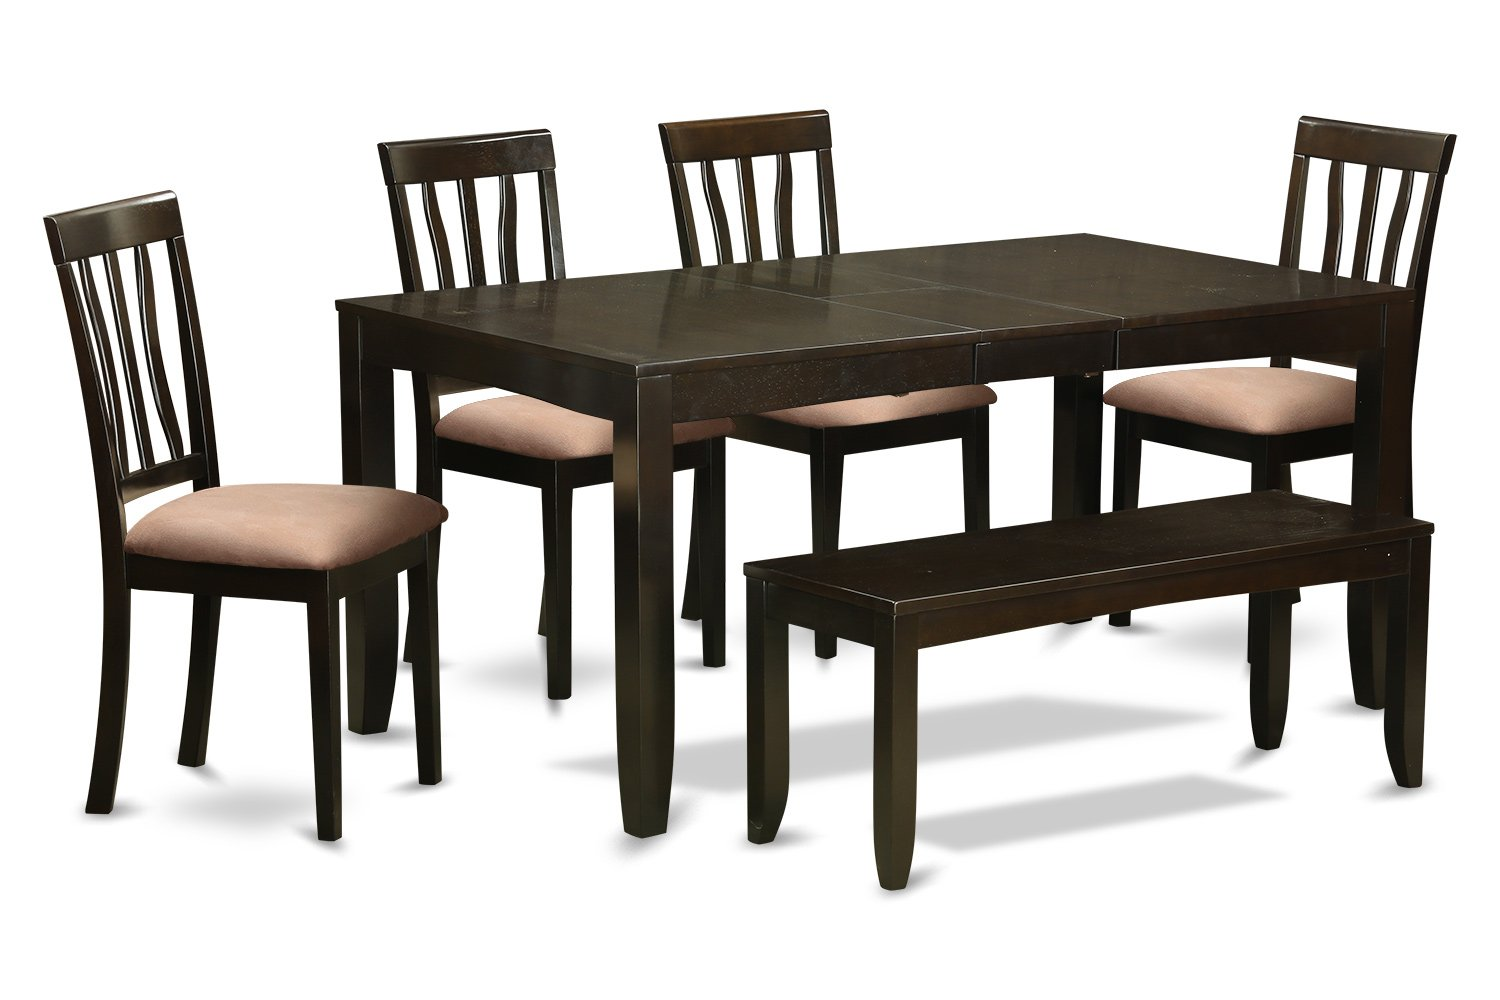 East West Furniture LYAN6-CAP-C 6-Piece Dining Table Set - Cappuccino Finish